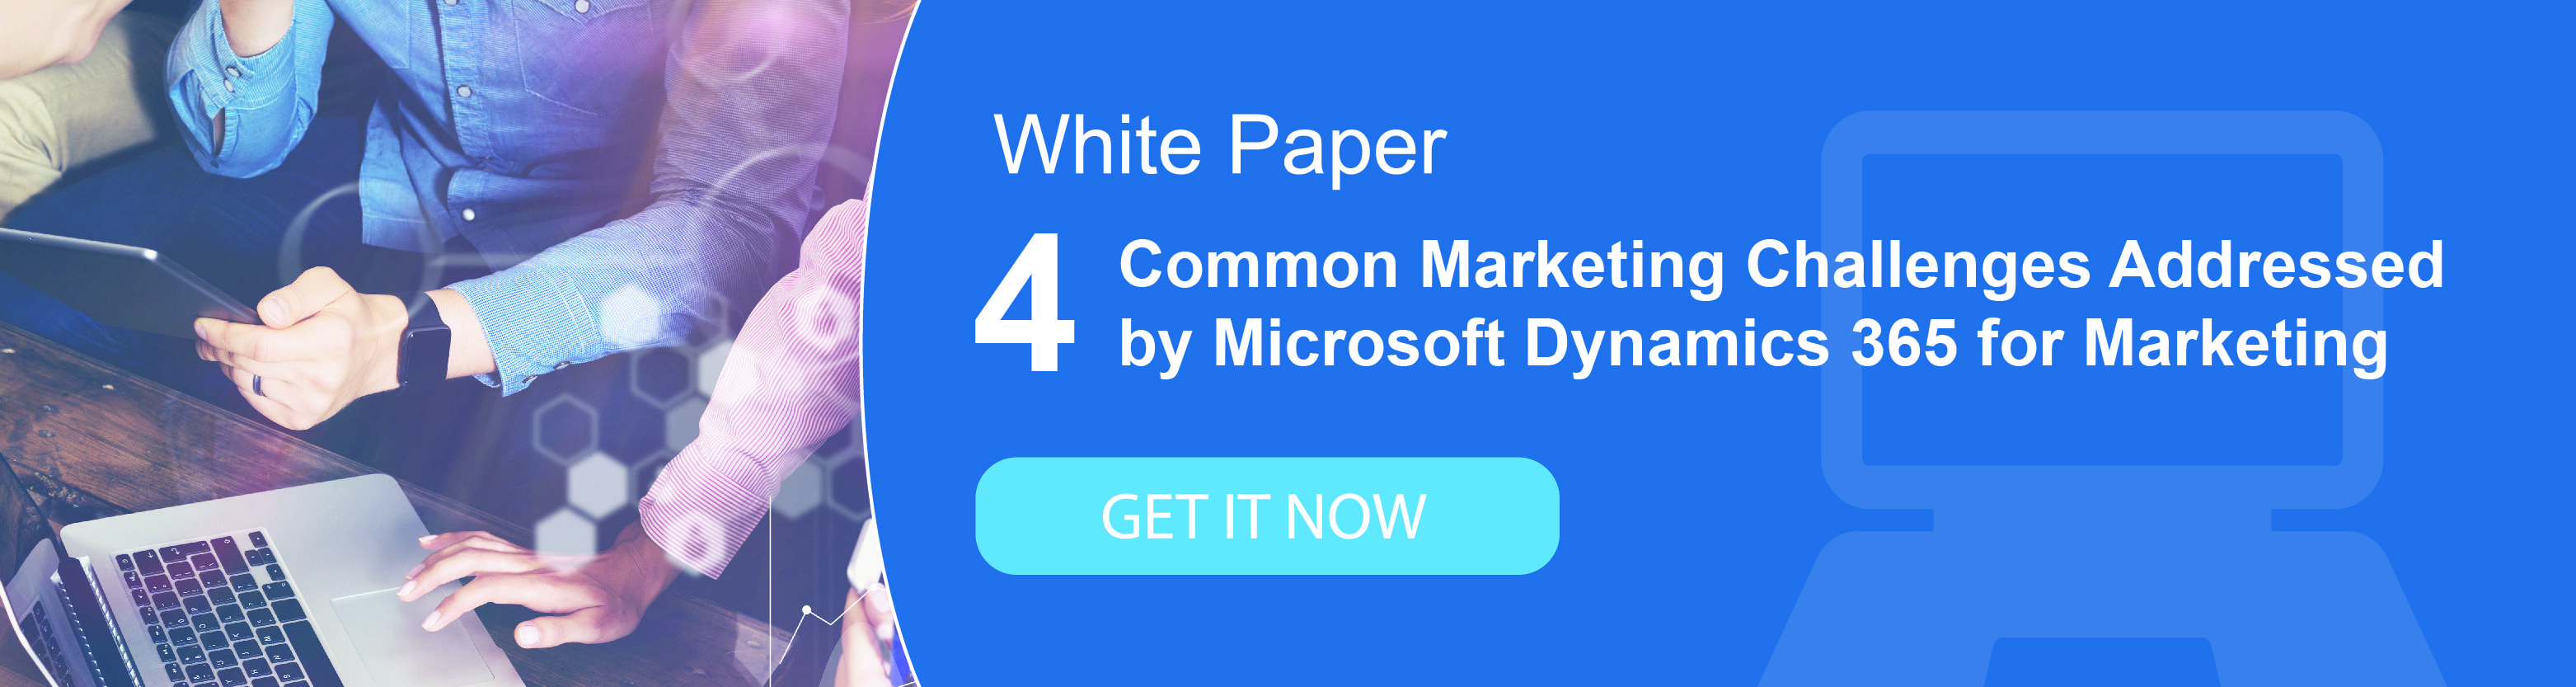 4 Common Marketing Challenges Addressed by Microsoft Dynamics 365 for Marketing